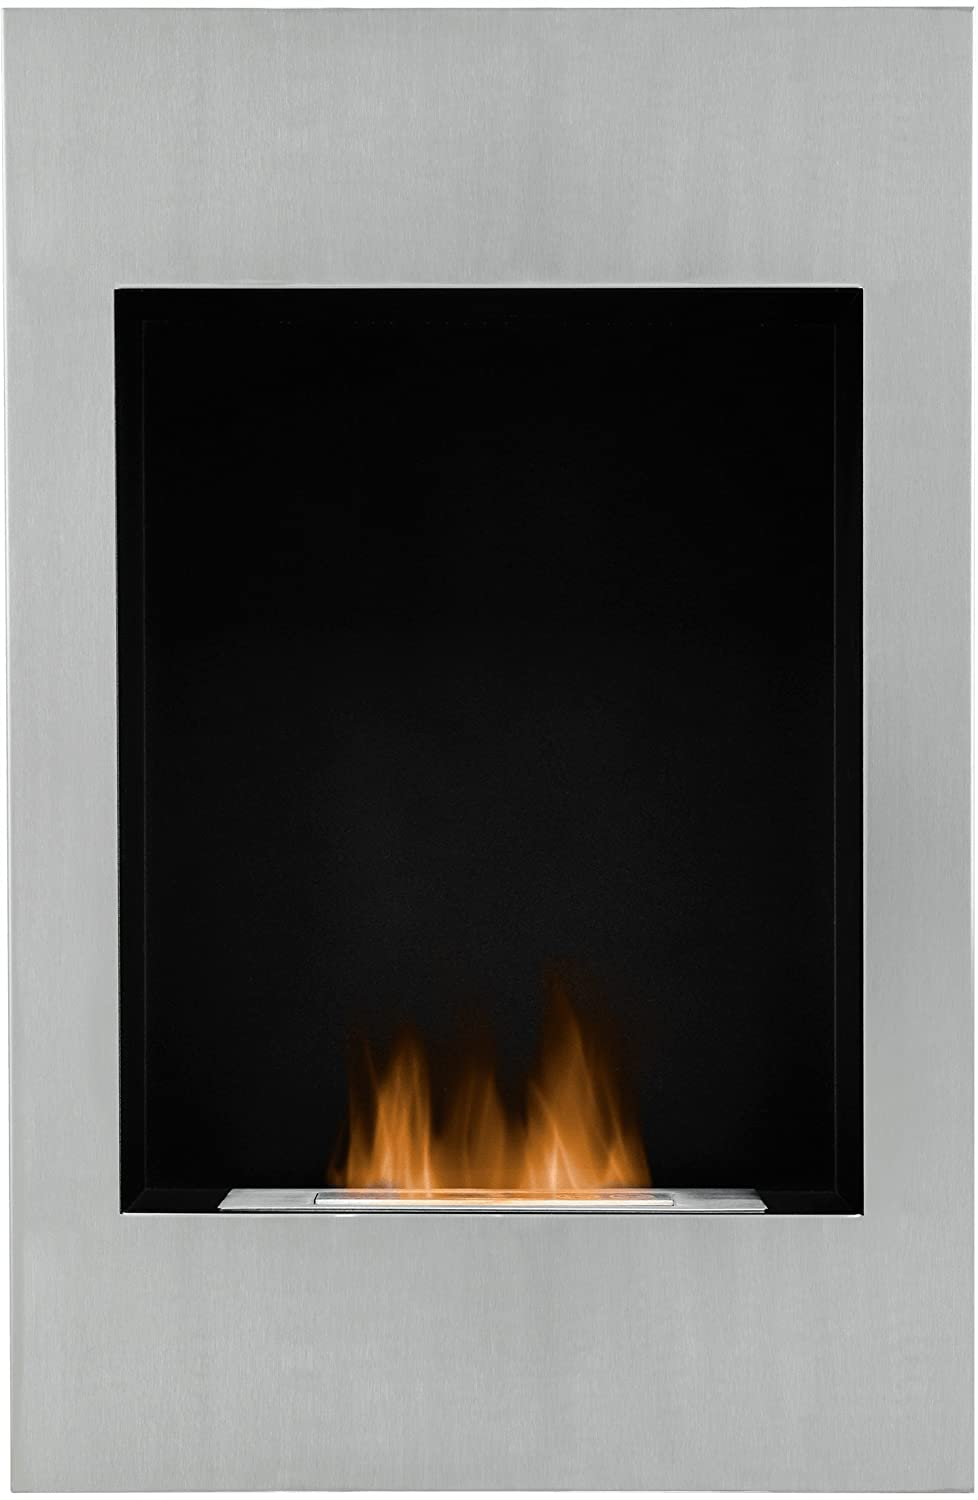 The alexis wall mounted bio ethanol fire in stainless steel 20 the alexis wall mounted bio ethanol fire in stainless steel 20 inch amazon kitchen home amipublicfo Images